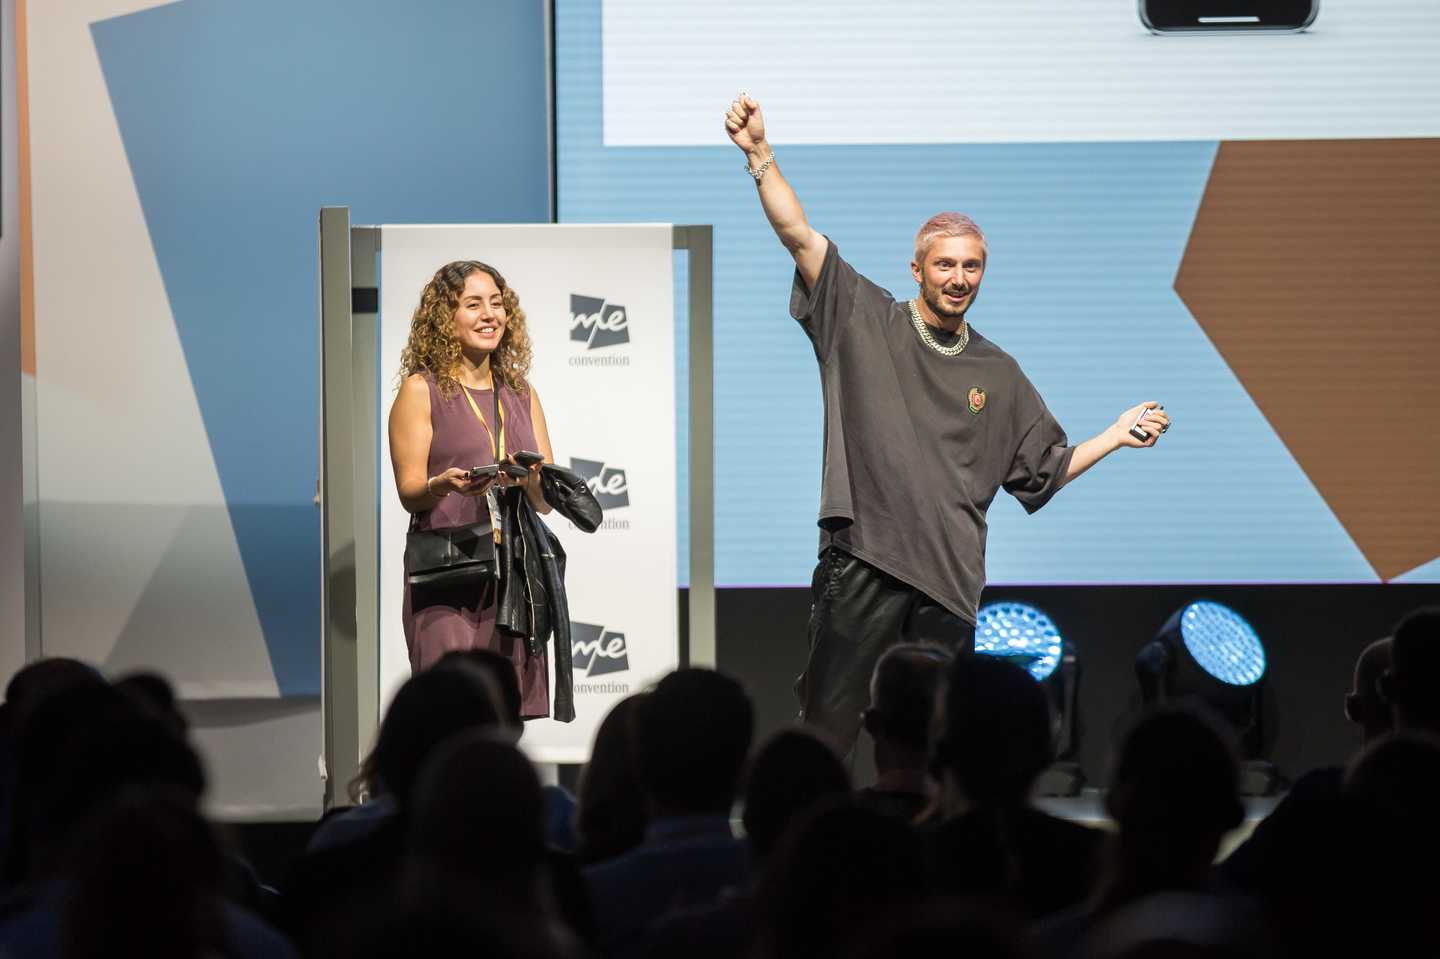 Tech magician Tom London dazzled the crowd. Photo by Markus Nass/Daimler AG